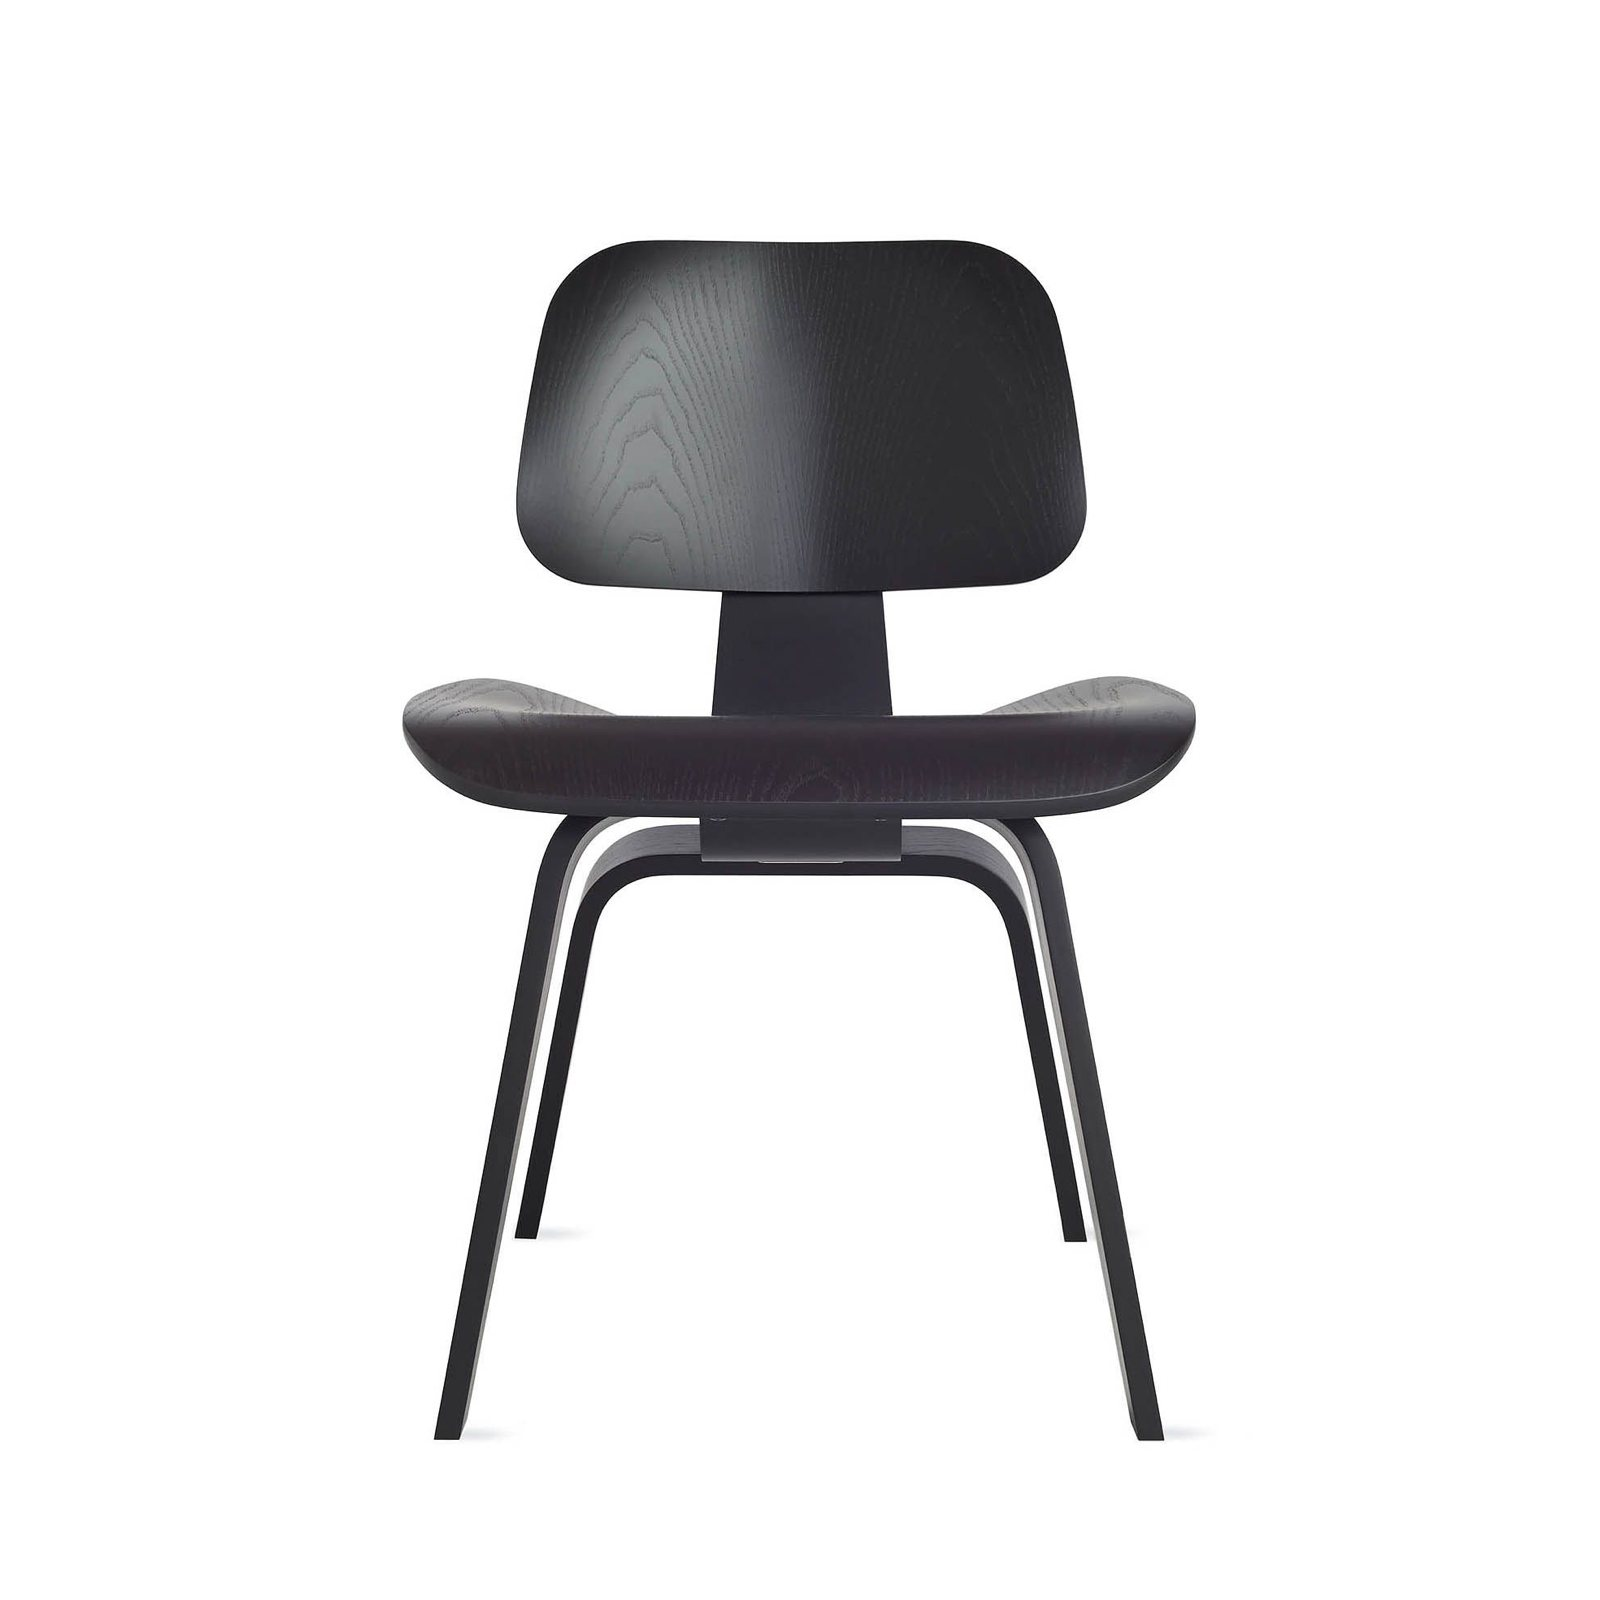 Eames Molded Plywood Dining Chair Wood Base, Ebony Stained.